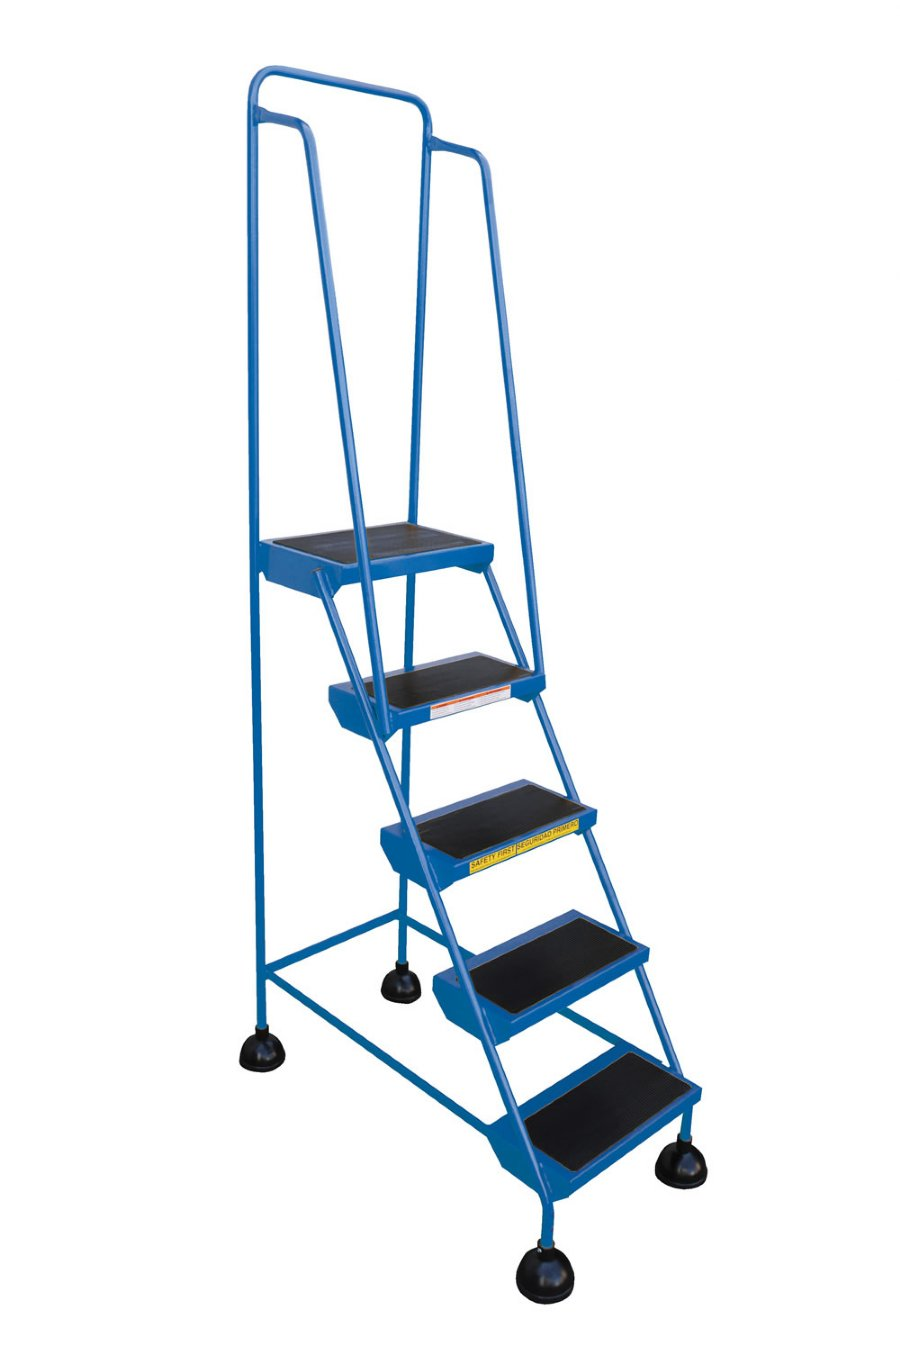 5 Step Spring Loaded Warehouse Ladders With Blue Powder